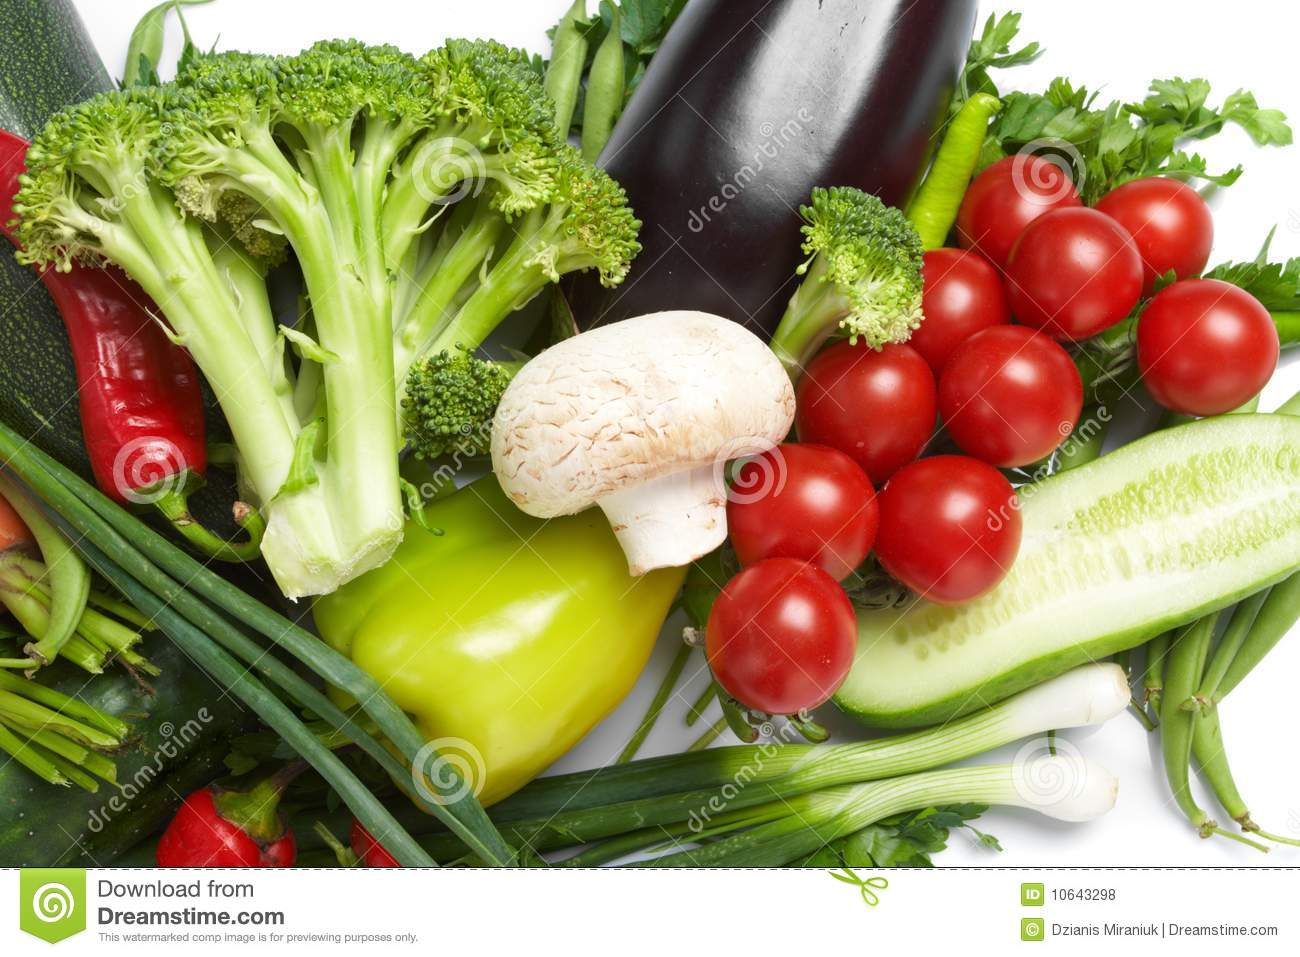 Low Calorie Vegetables Stock Photo Image Of Tomato Green 10643298